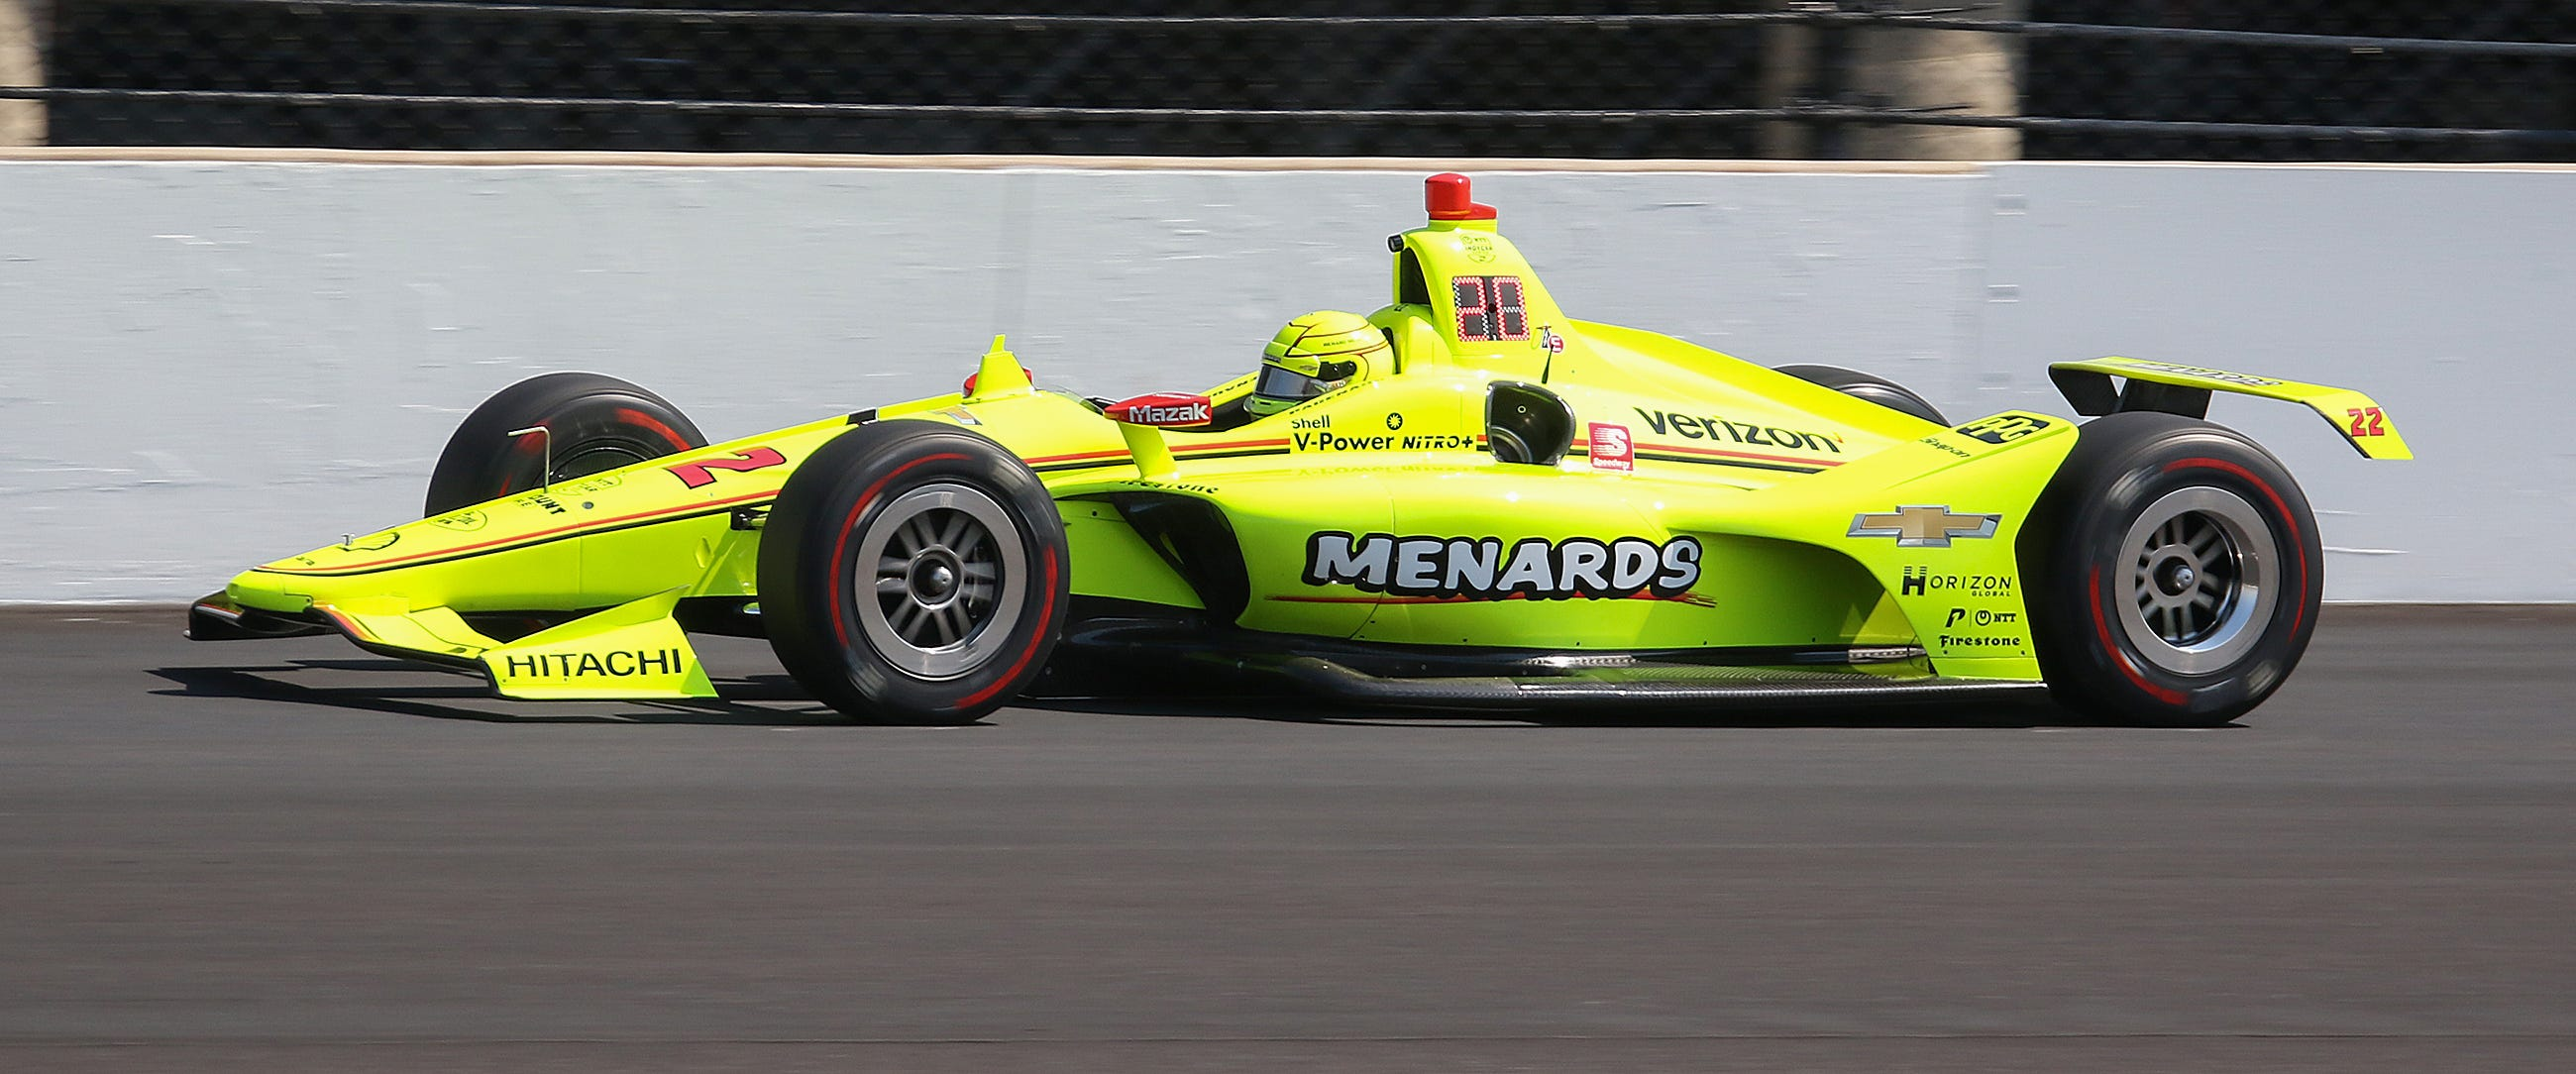 image regarding Printable Indy 500 Starting Grid called Indy 500 lineup: Printable setting up grid for the 2019 race